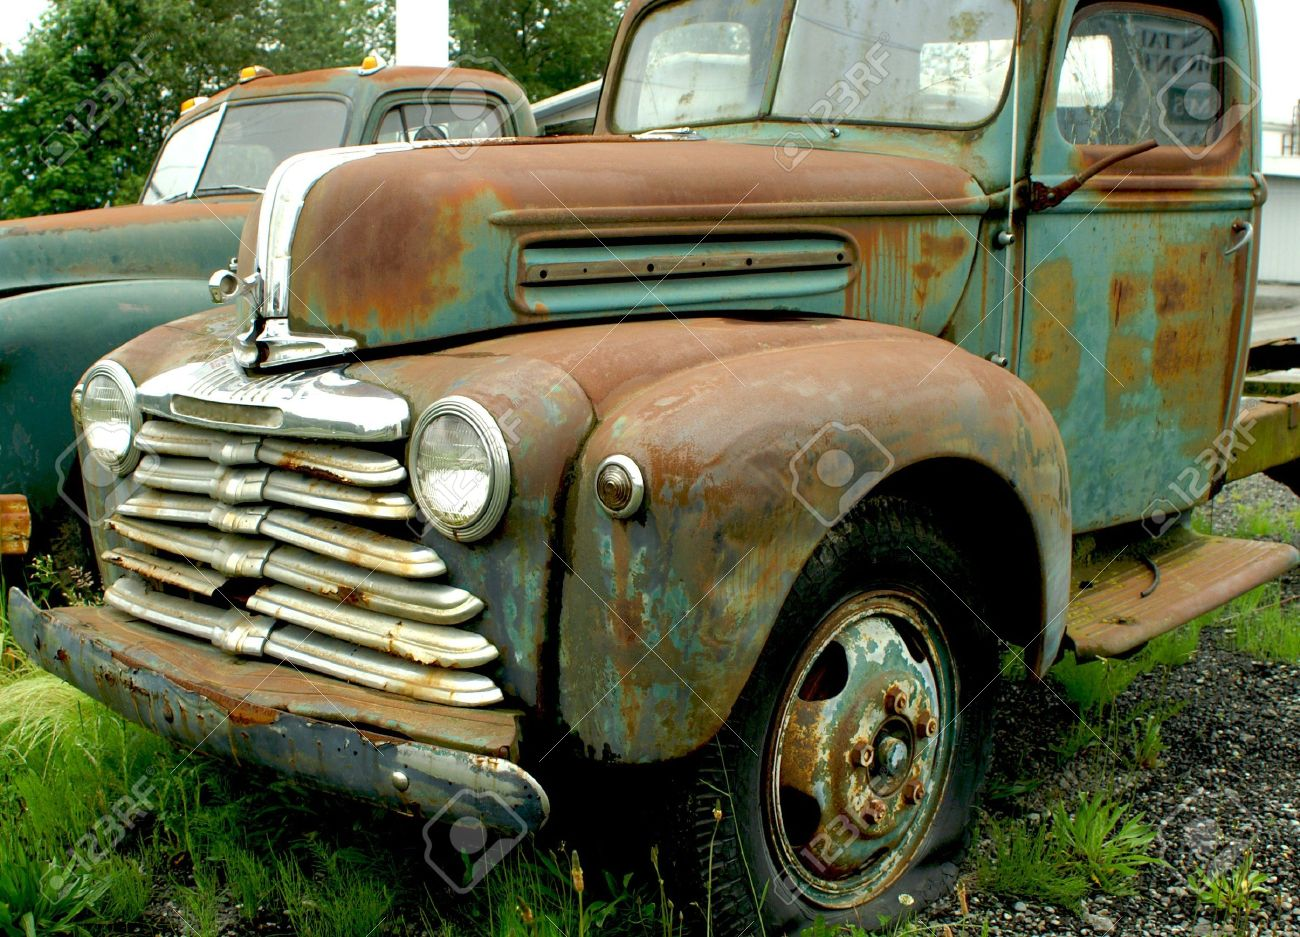 Rharris 1 Royalty Free Photos Pictures Images And Stock Photography 1941 Mercury Pick Up Old Rusted Truck